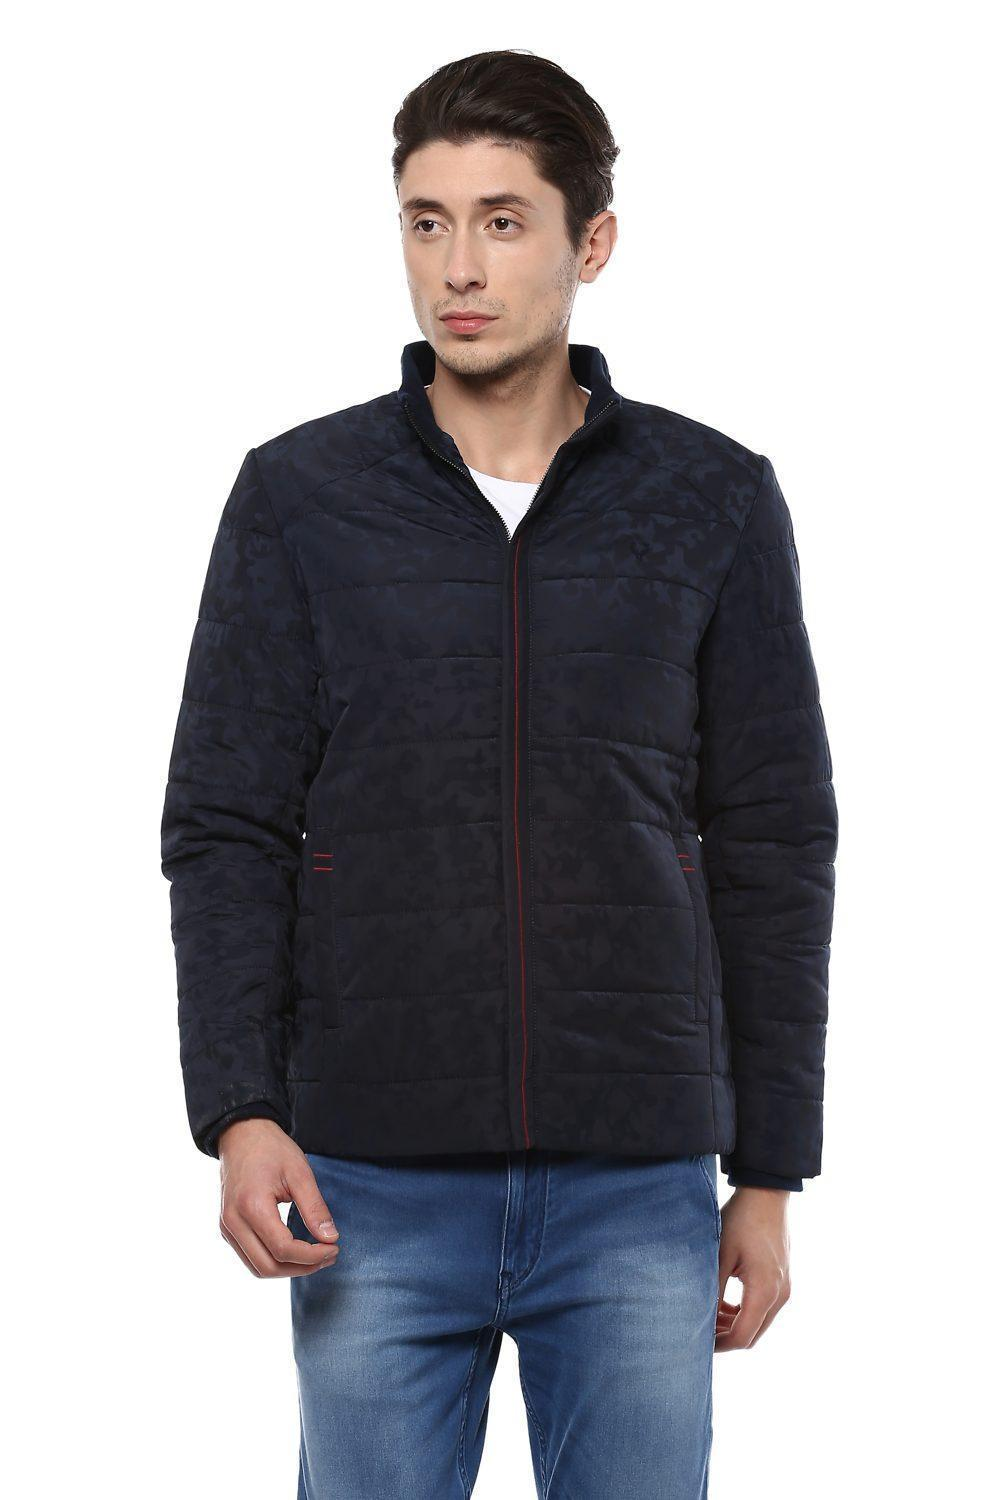 658809942 Solly Jeans Co Jackets, Allen Solly Navy Jacket for Men at Allensolly.com